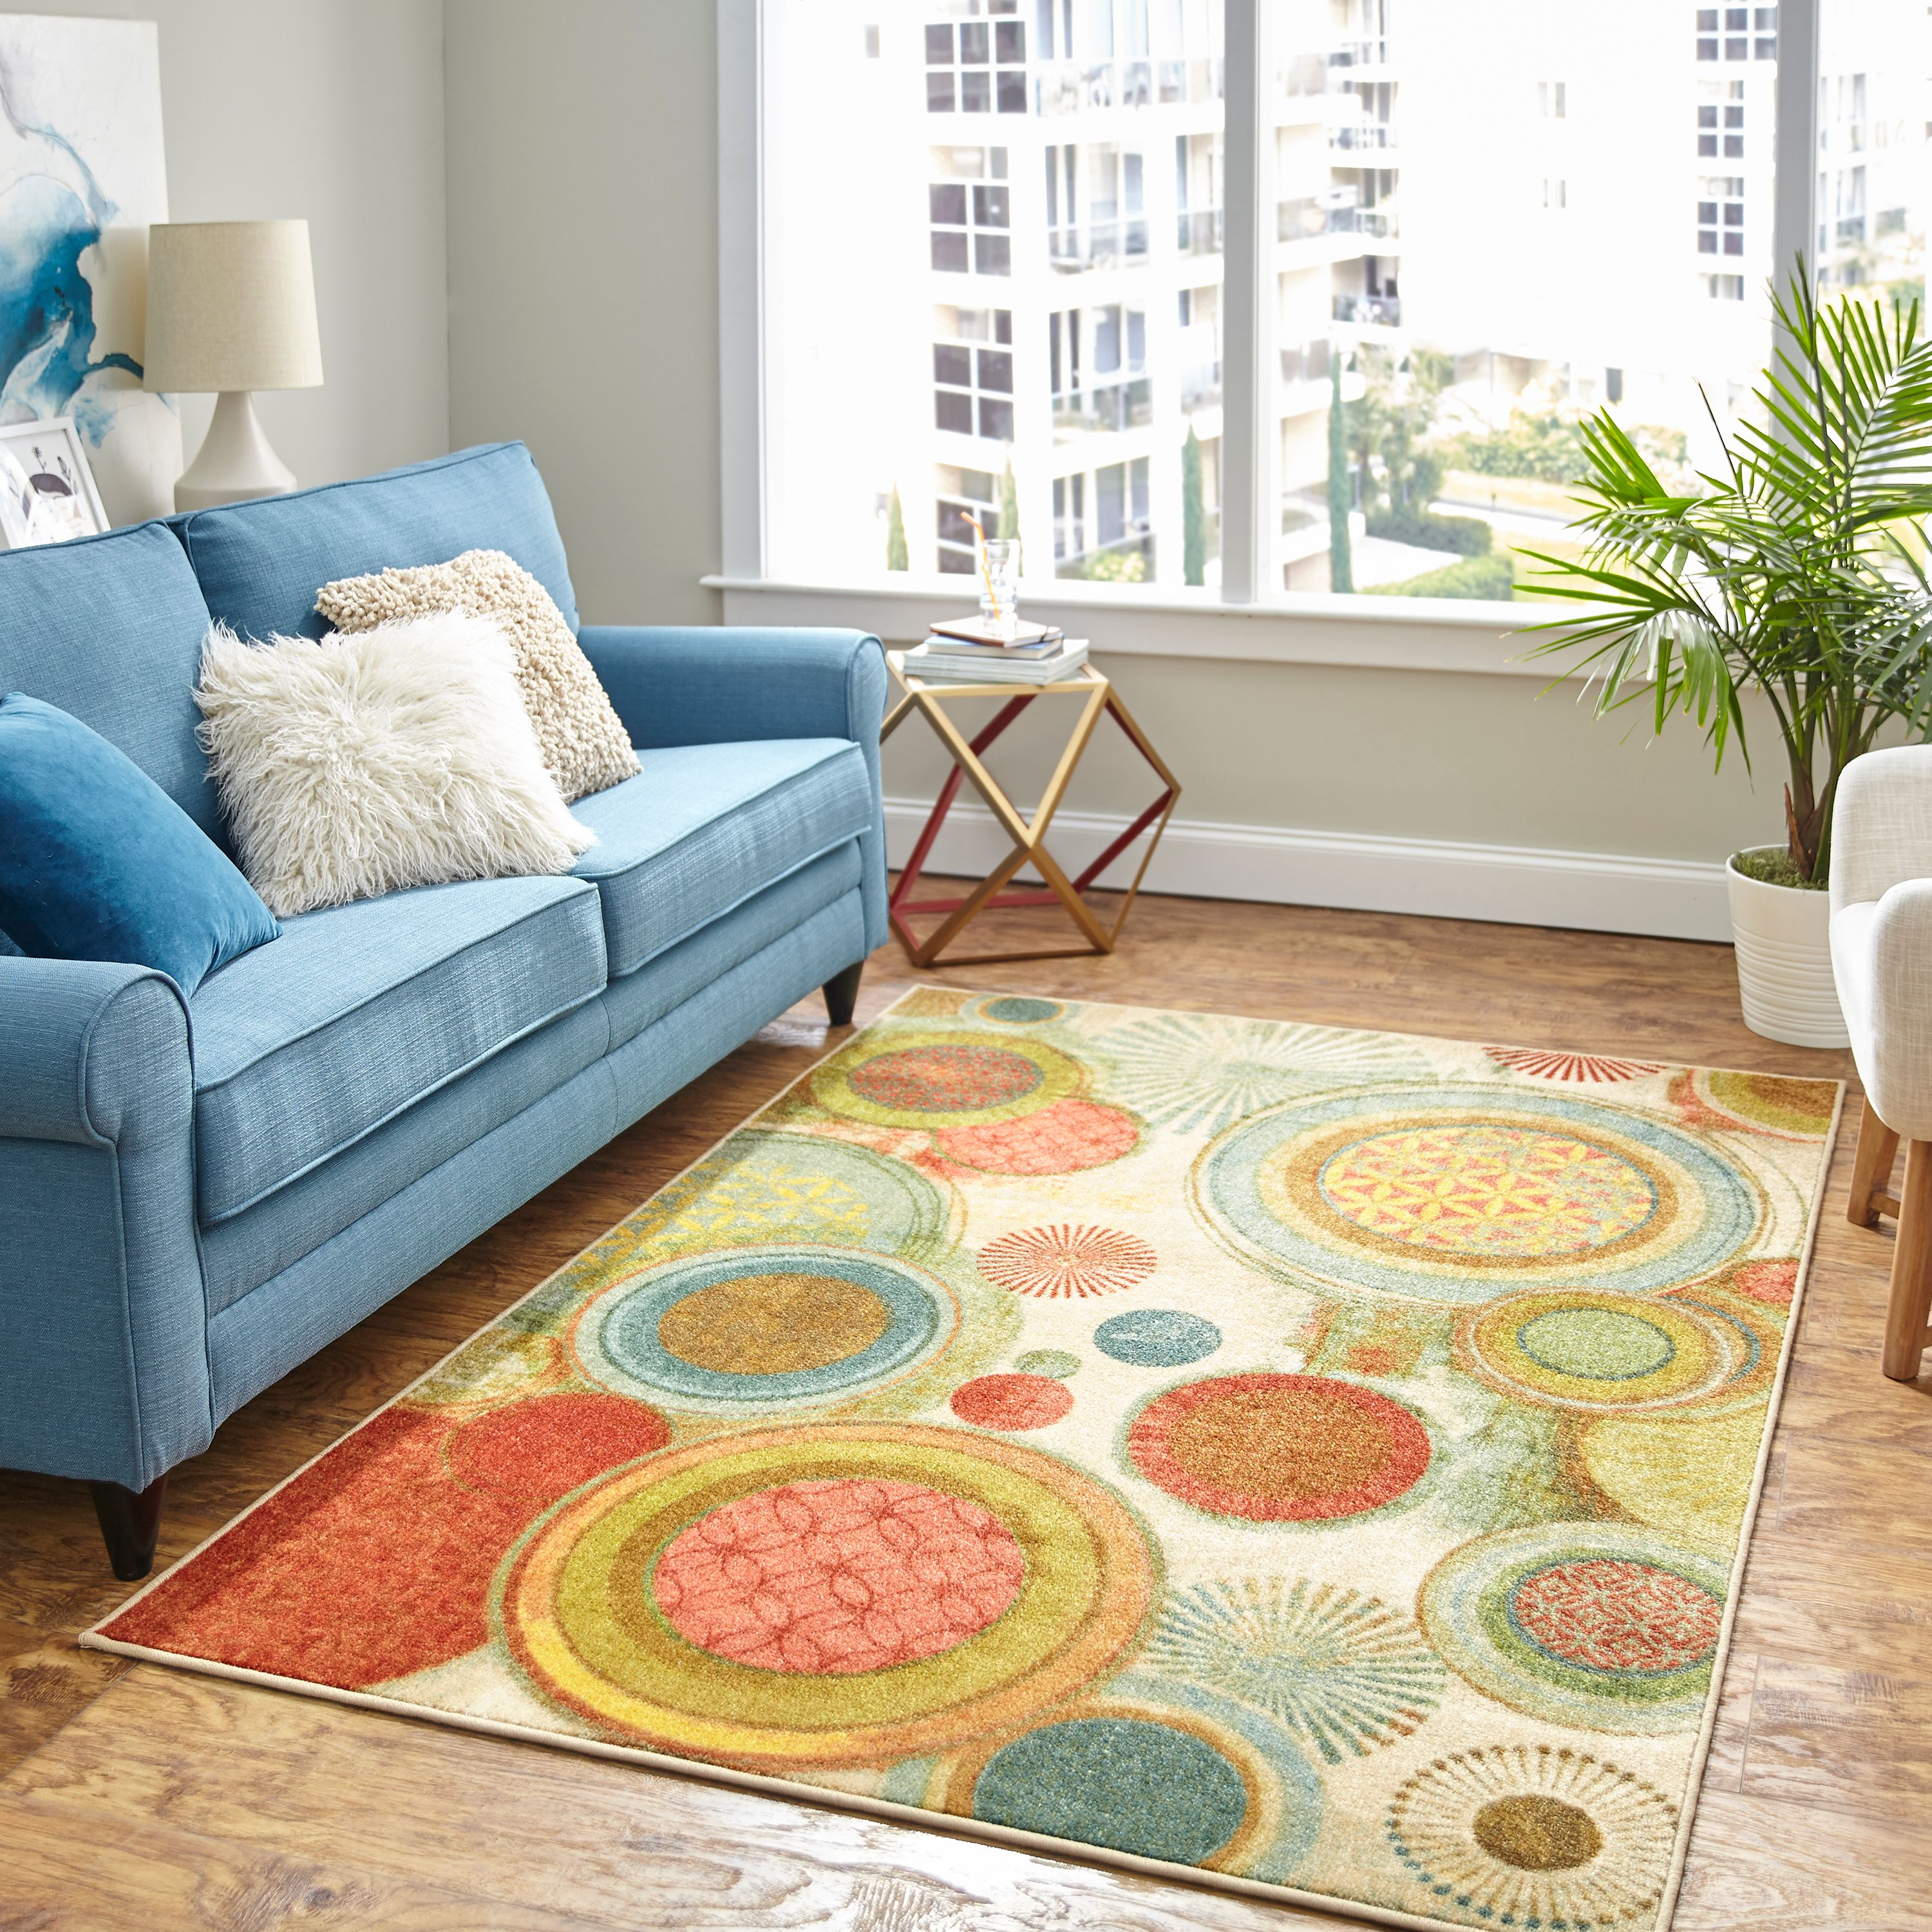 Mohawk Home Motion Printed Area Rug, Multicolor, 7'6 x 10'